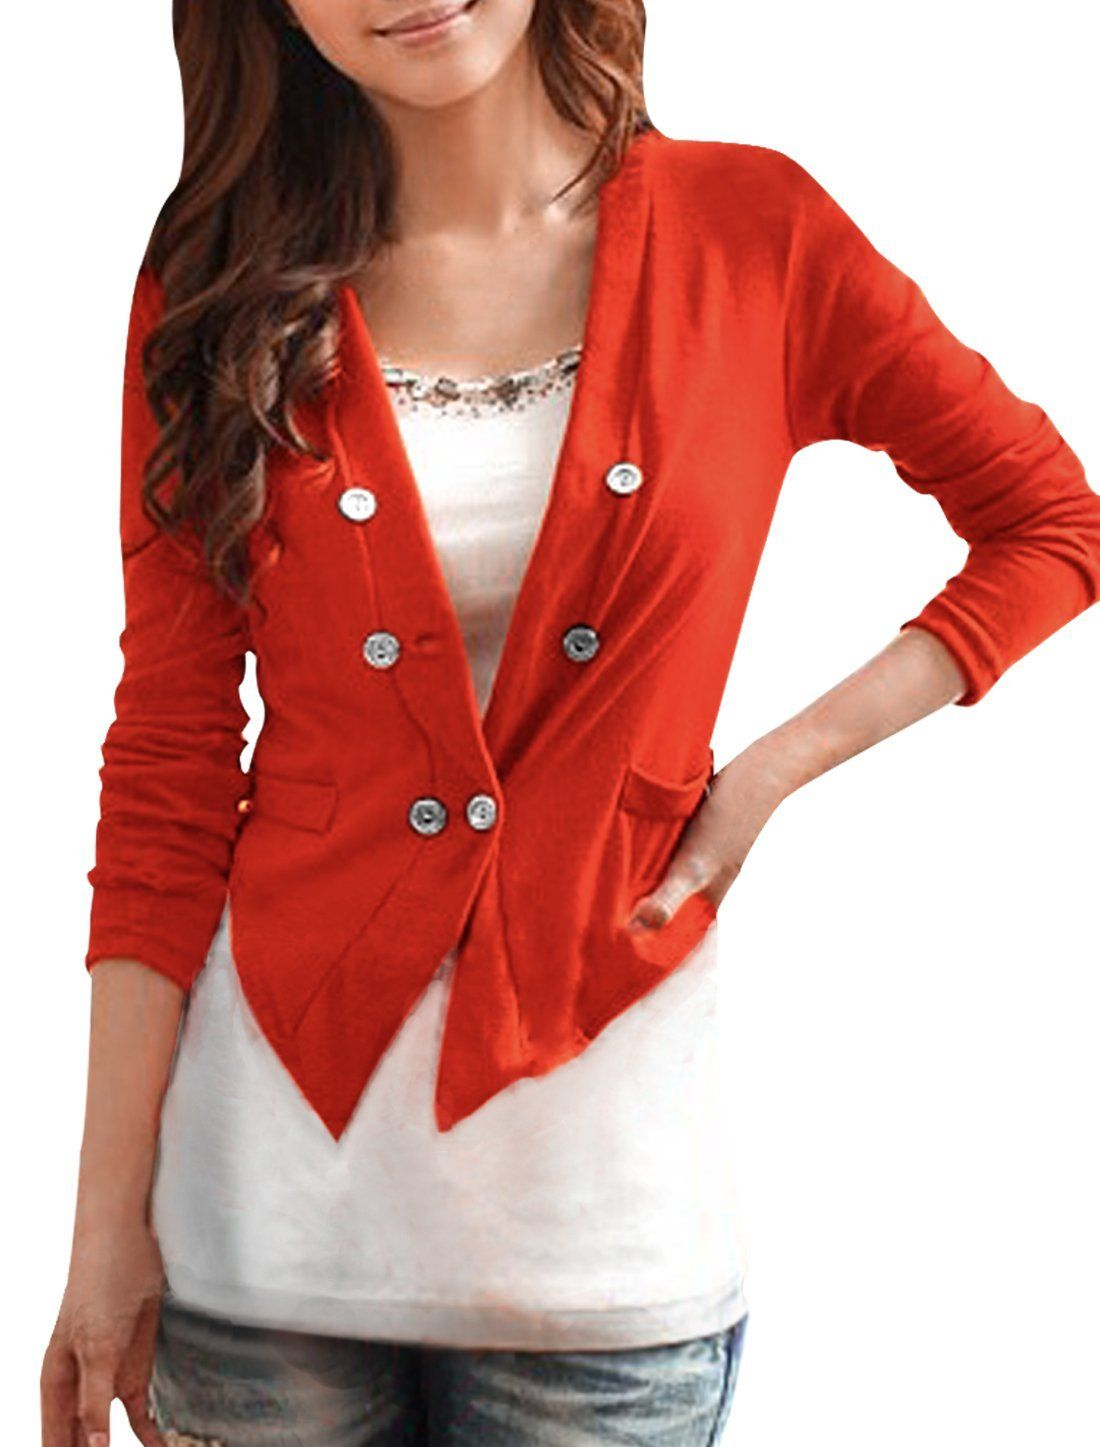 Women Deep V Neck Button Up Autumn Thin Cropped Cardigan           ($12.56) http://www.amazon.com/exec/obidos/ASIN/B008SCLAW4/hpb2-20/ASIN/B008SCLAW4 Looks soooo cheap!!!! - The buttons are a little cheap looking, and the color is a little off from the pictures but still cute. - So there's a hole right at the front.